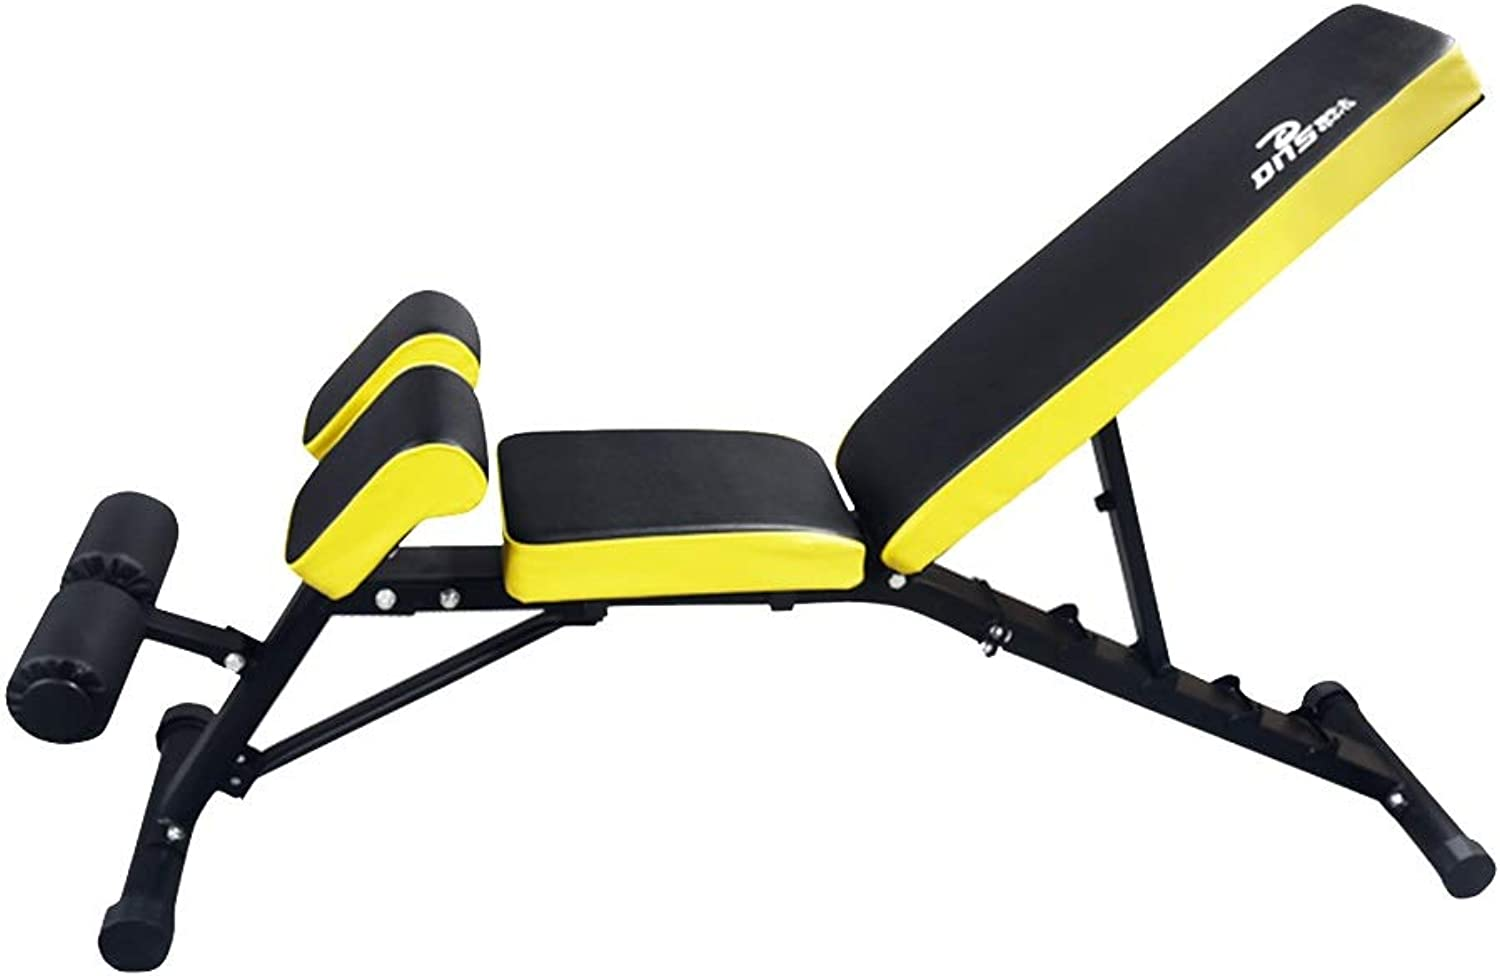 Adjustable Benches Foldable Weight Bench Bench Press LoadBearing 300kg Adjustable Abdominal Muscles Fitness Equipment Gym Benches (color   Yellow, Size   155  40  47cm)